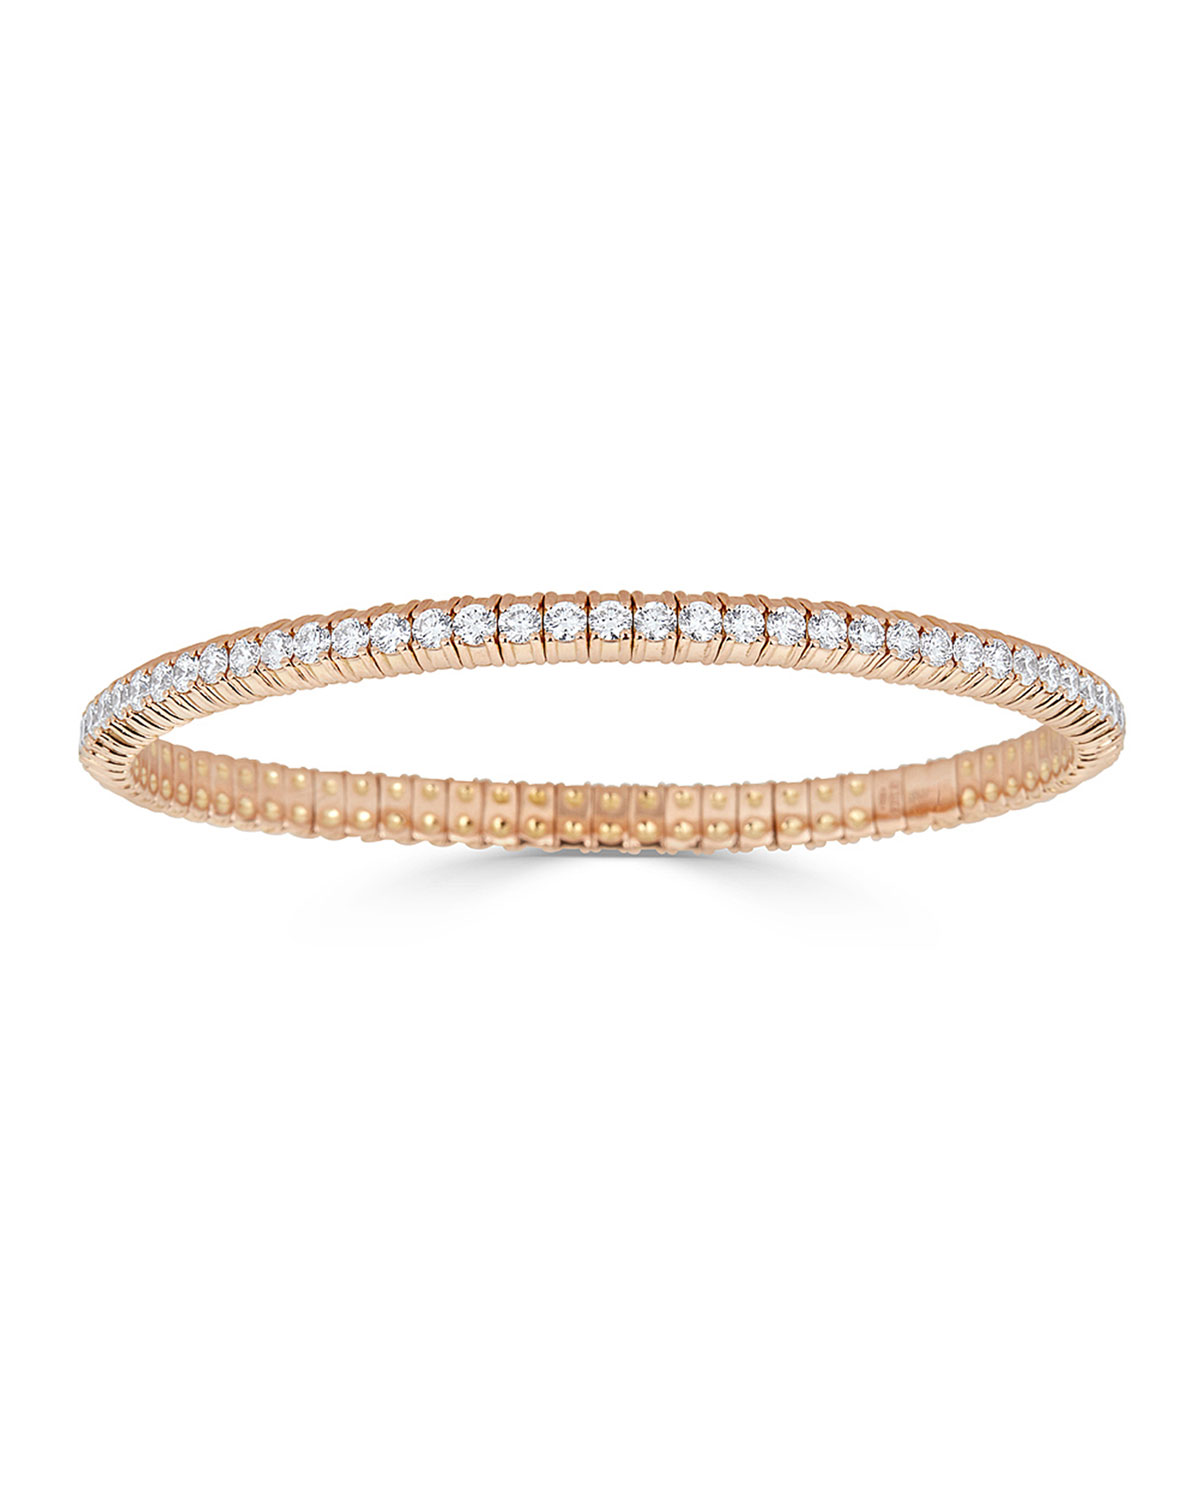 ZYDO 18k Rose Gold Stretch Diamond Bracelet, 3.8tcw